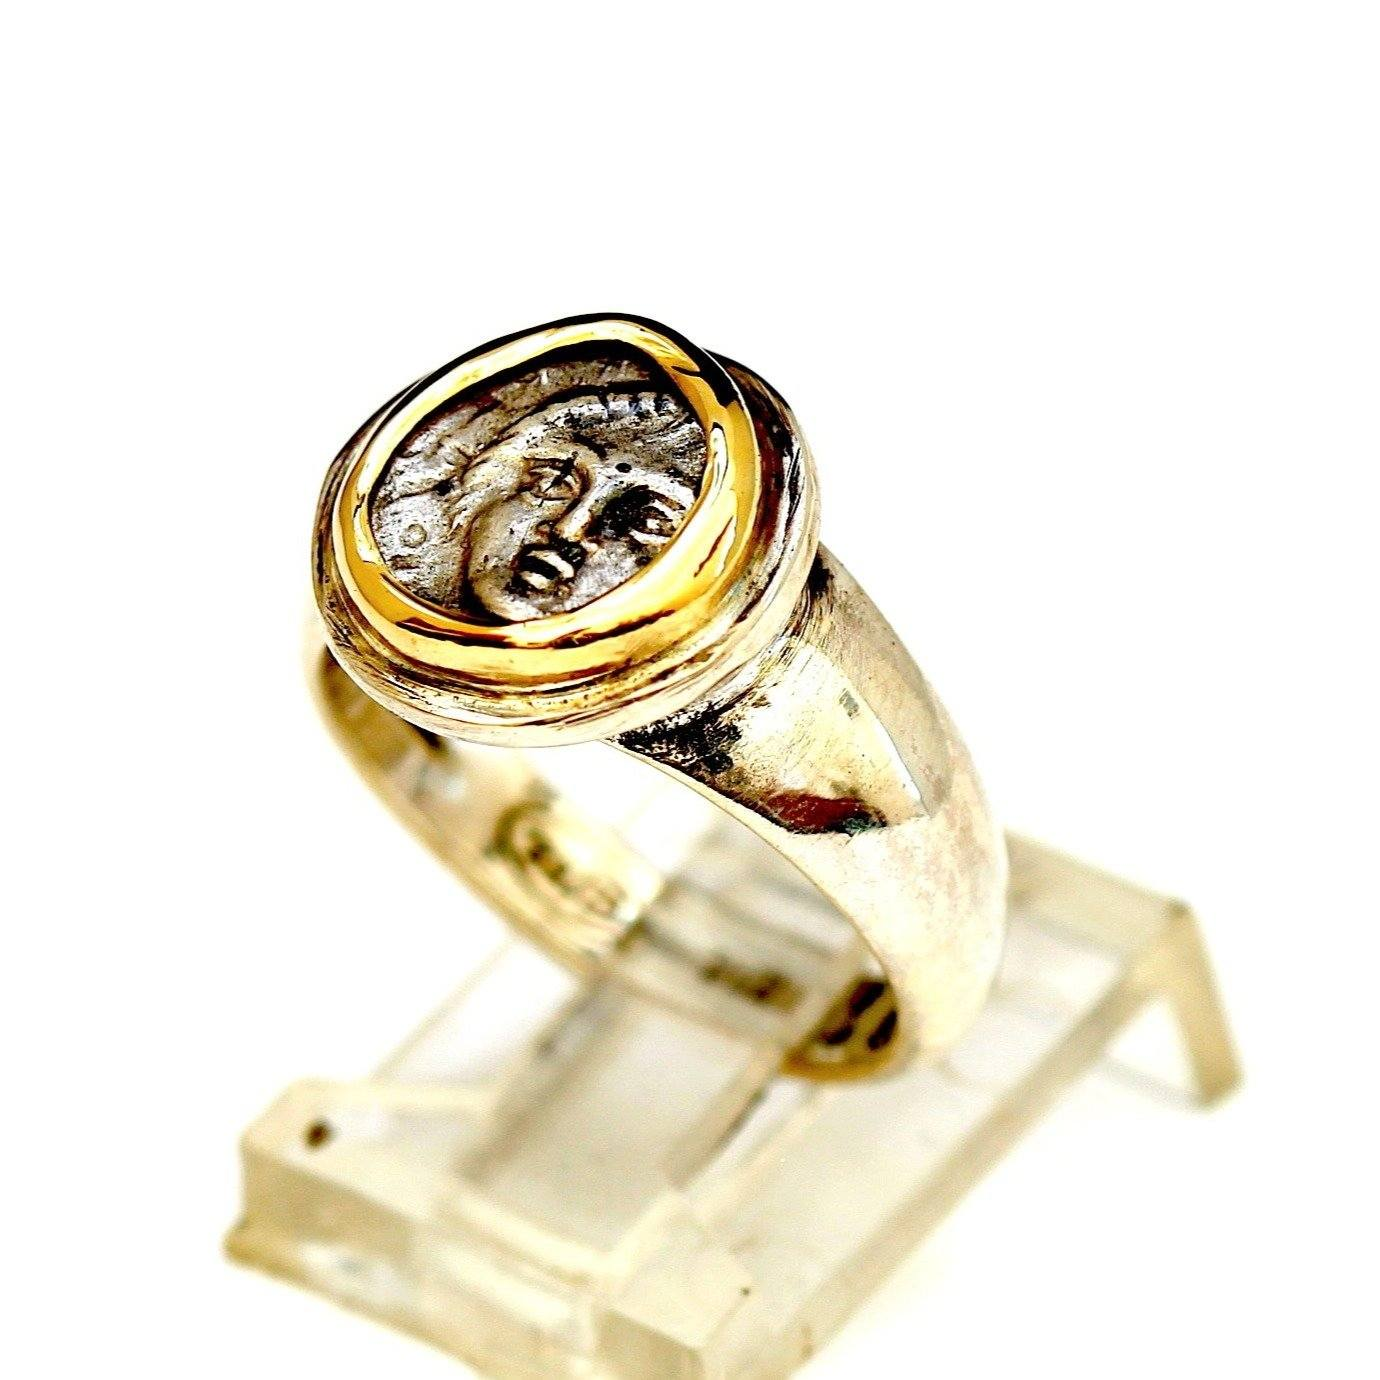 Apollonia Greek Coin, Sterling Silver Ring, 18K Gold Bezel, Genuine Ancient Coin, with Certificate 8082 - Erez Ancient Coin Jewelry